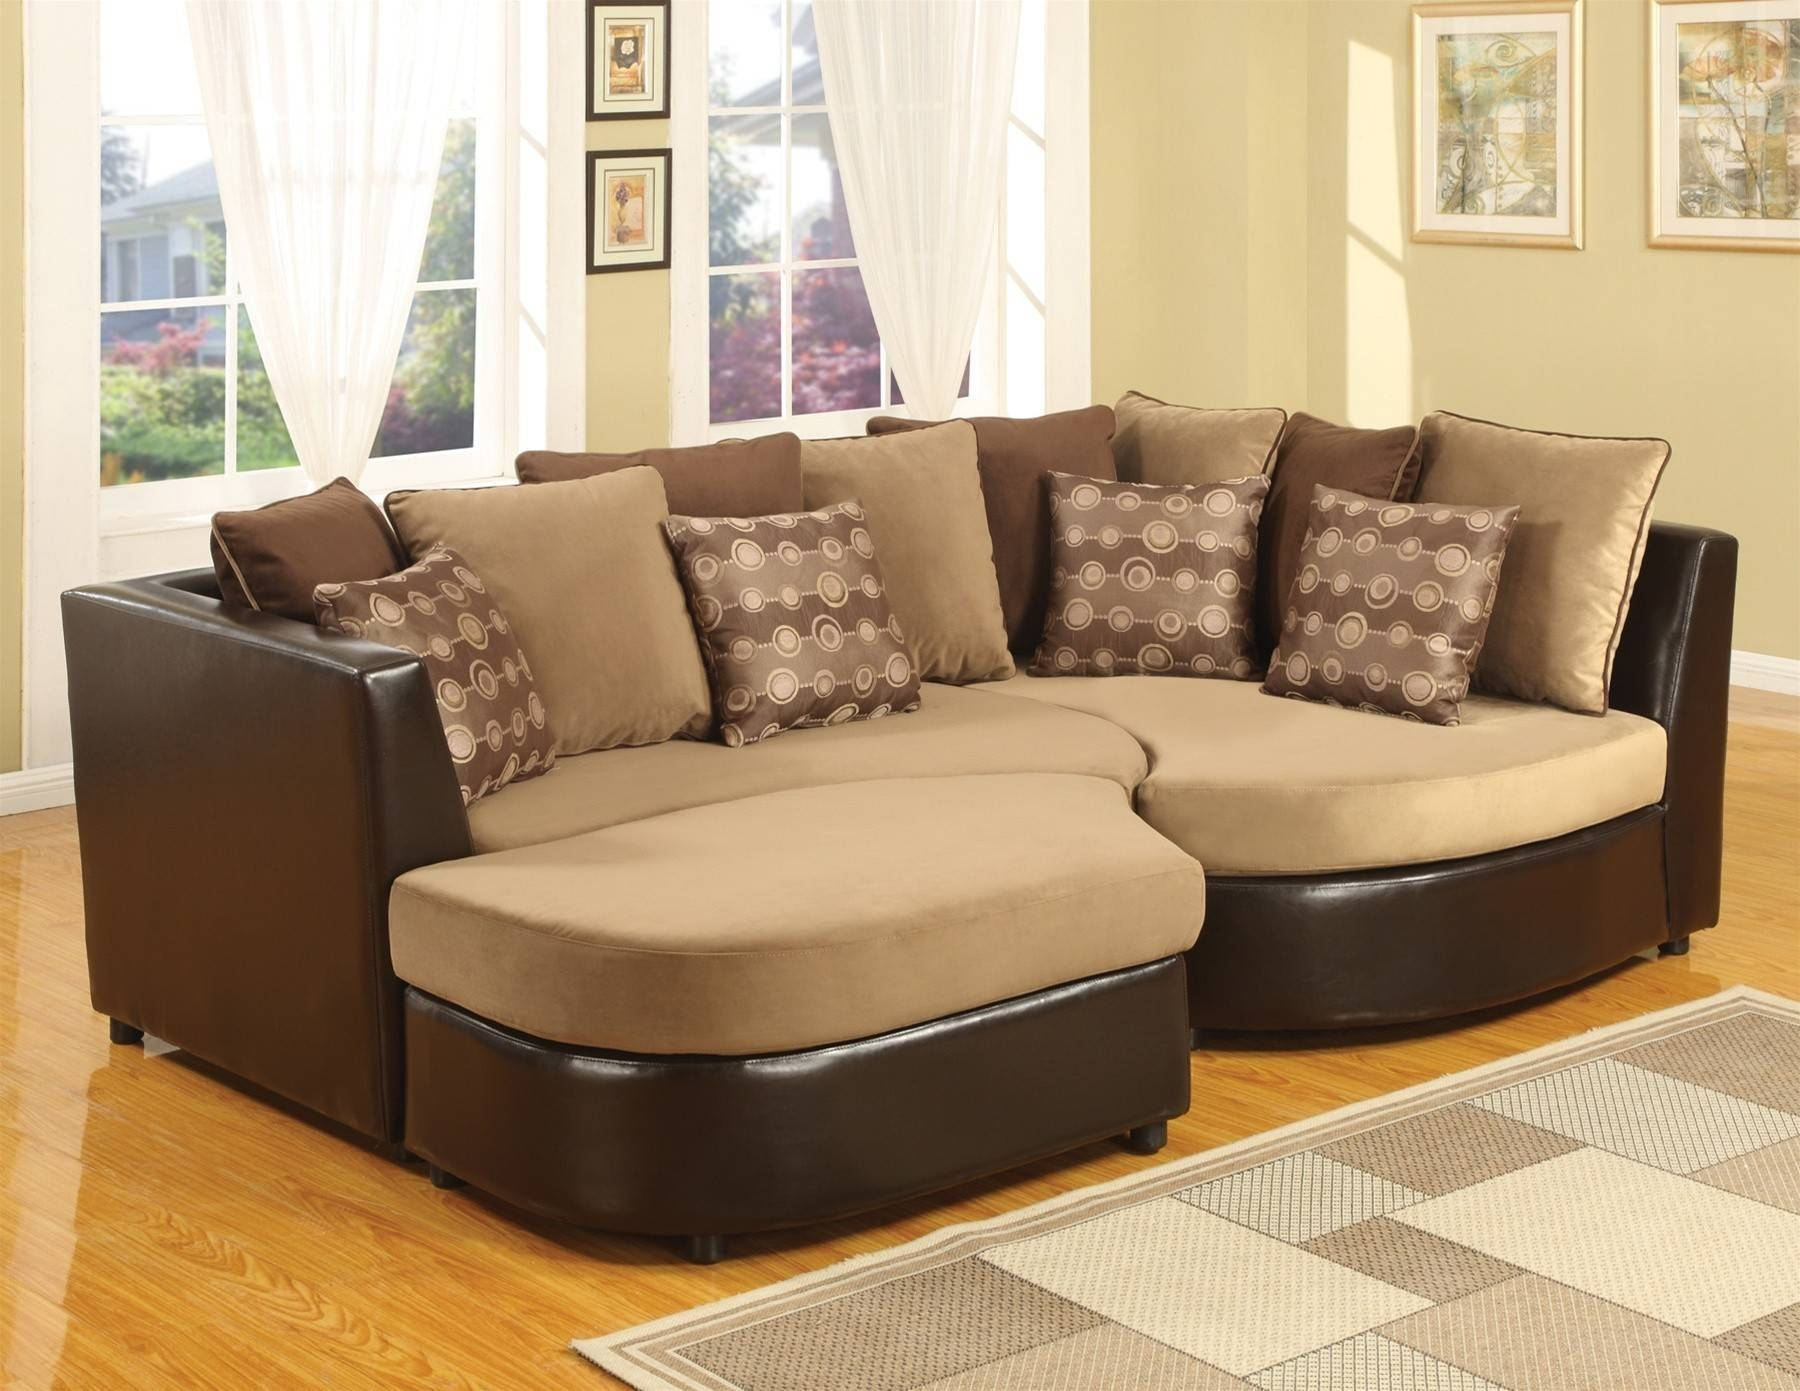 Amazing Pit Sectional Sofa 54 For Your Closeout Sectional Sofas regarding Closeout Sectional Sofas (Image 3 of 30)